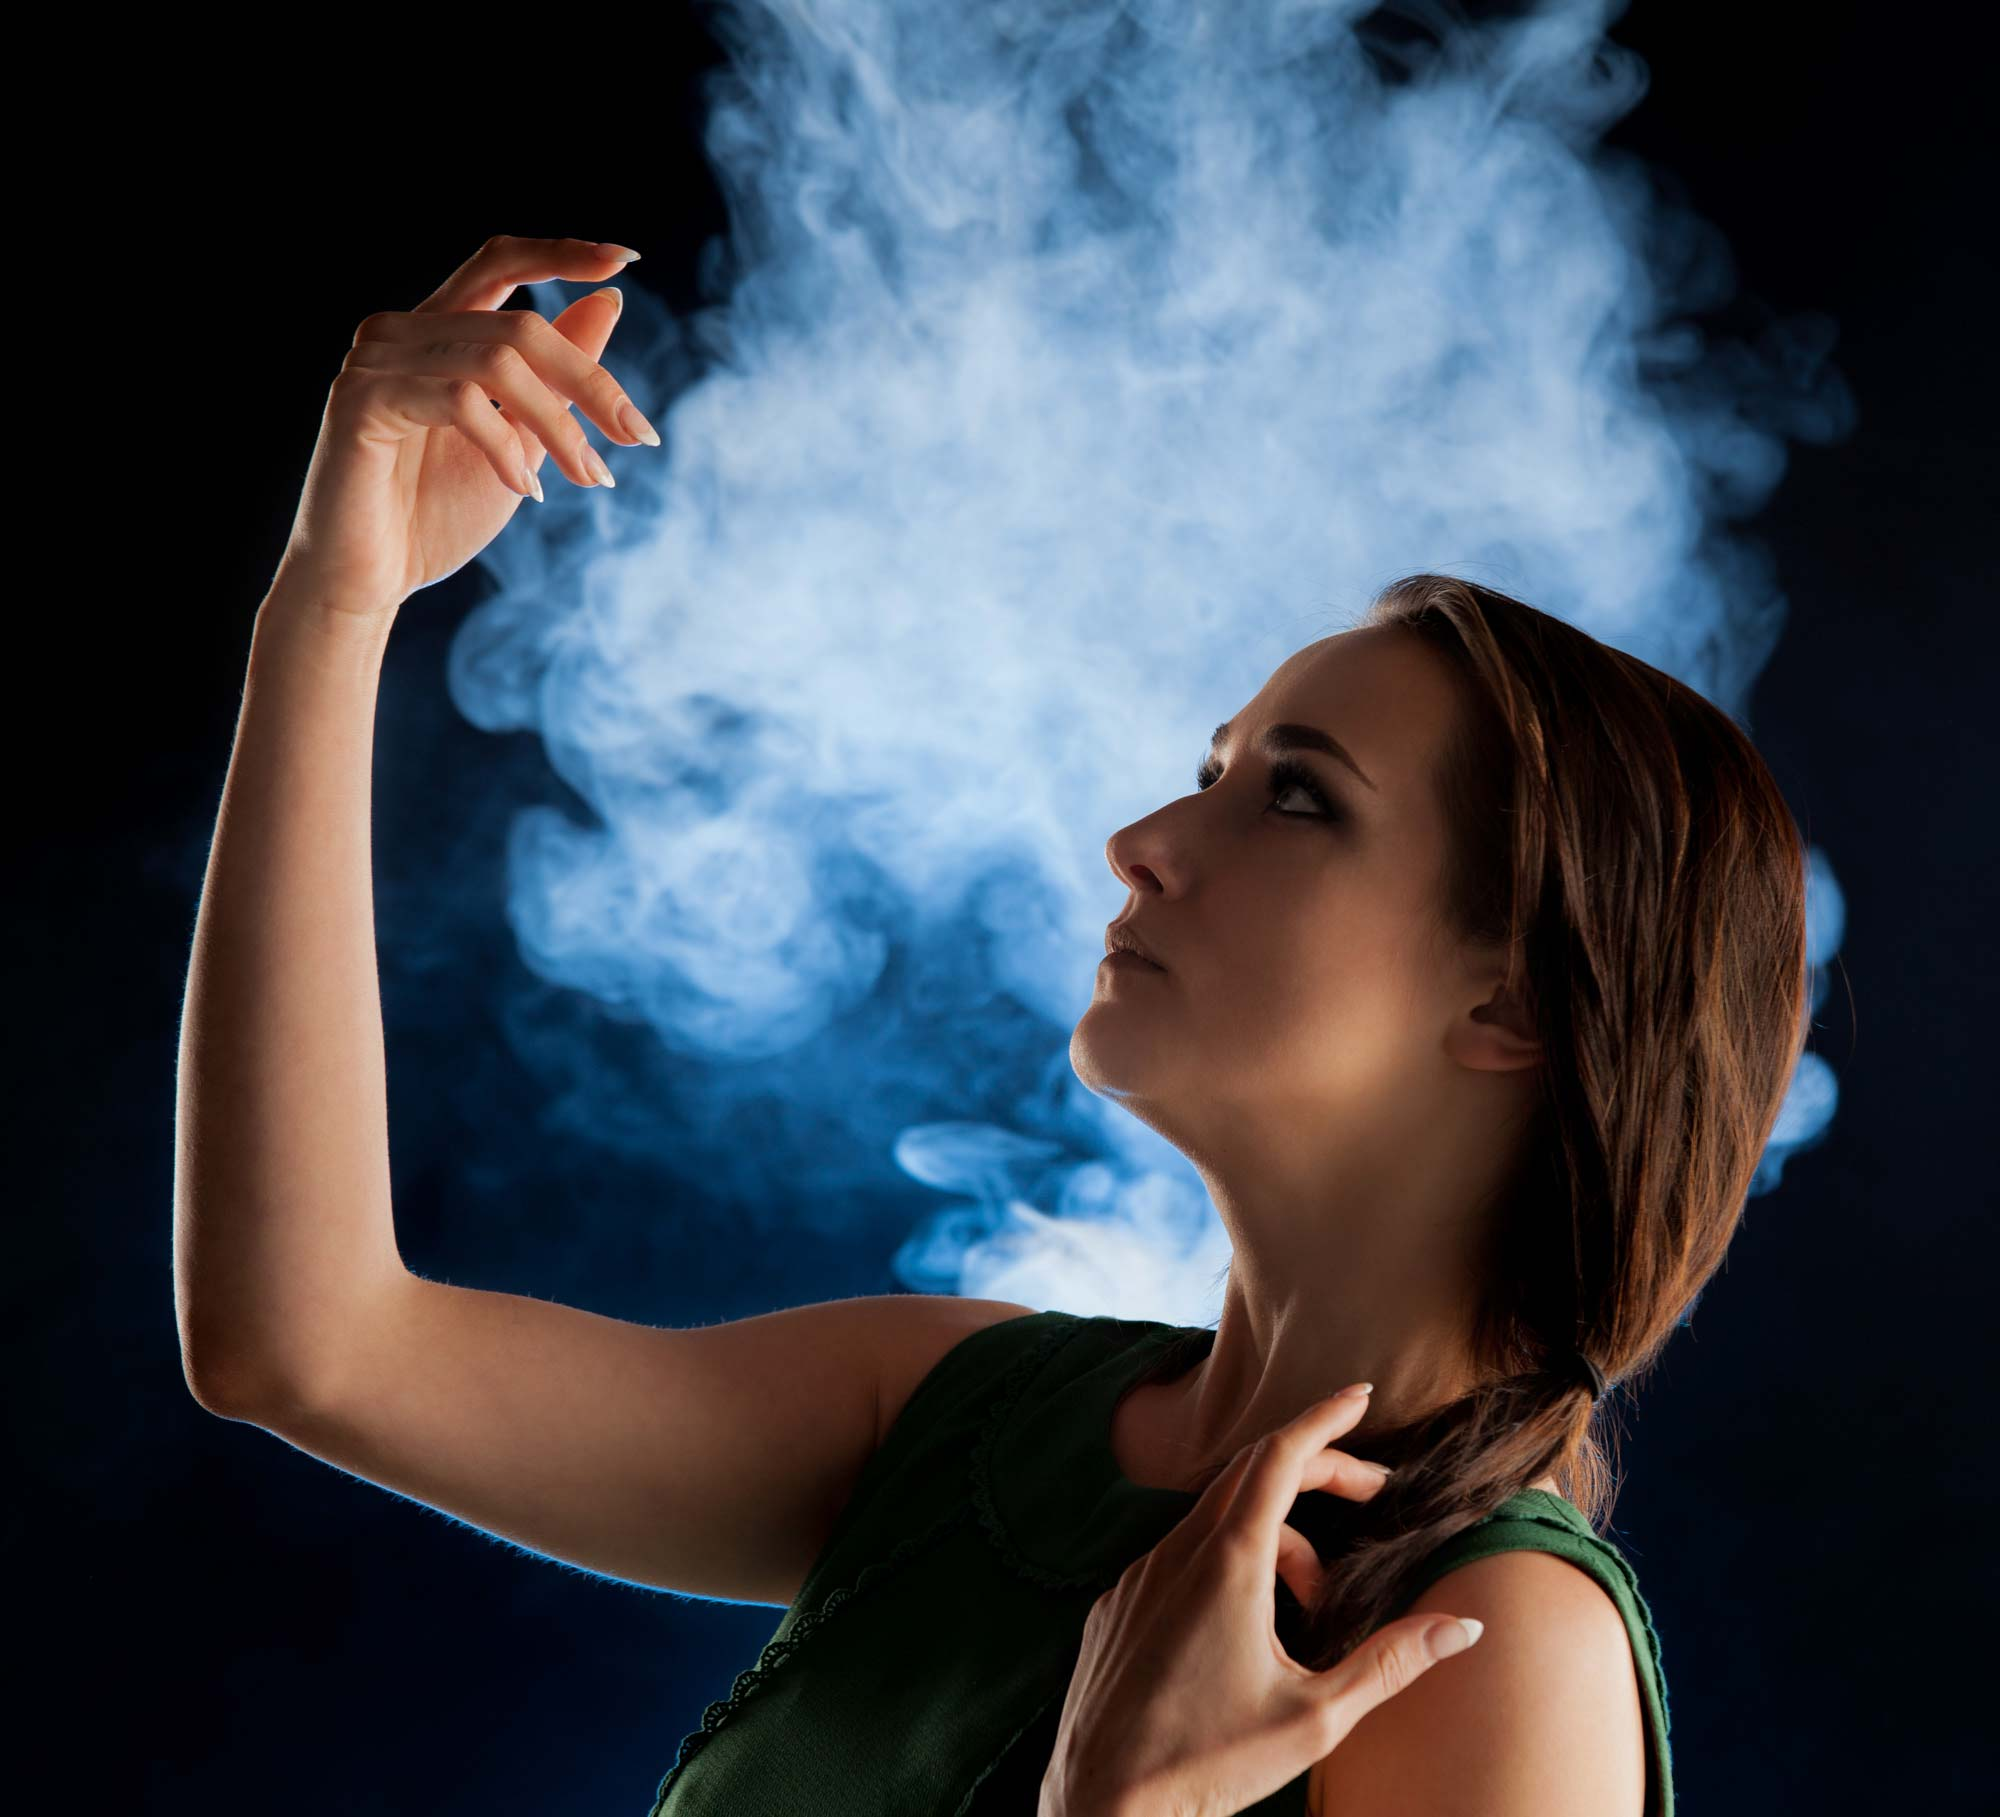 Woman in dramatic portrait with smoke in background | Fashion Photography